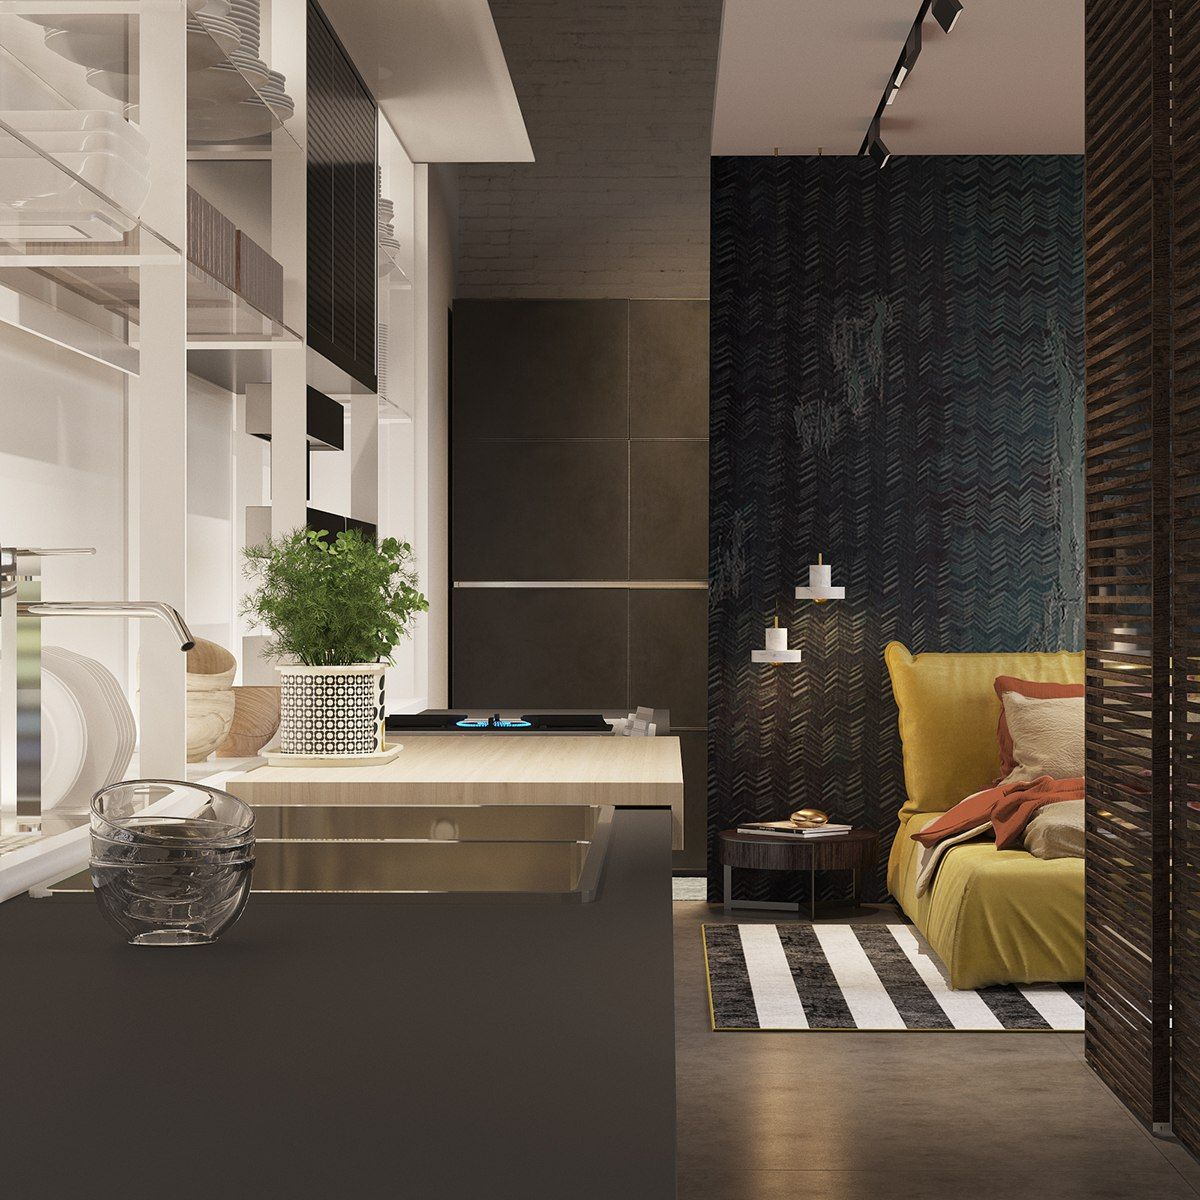 Home Decoration Design Minimalist Interior Design Staircase: A Pair Of Dark Themed Homes With Sophisticated Accent